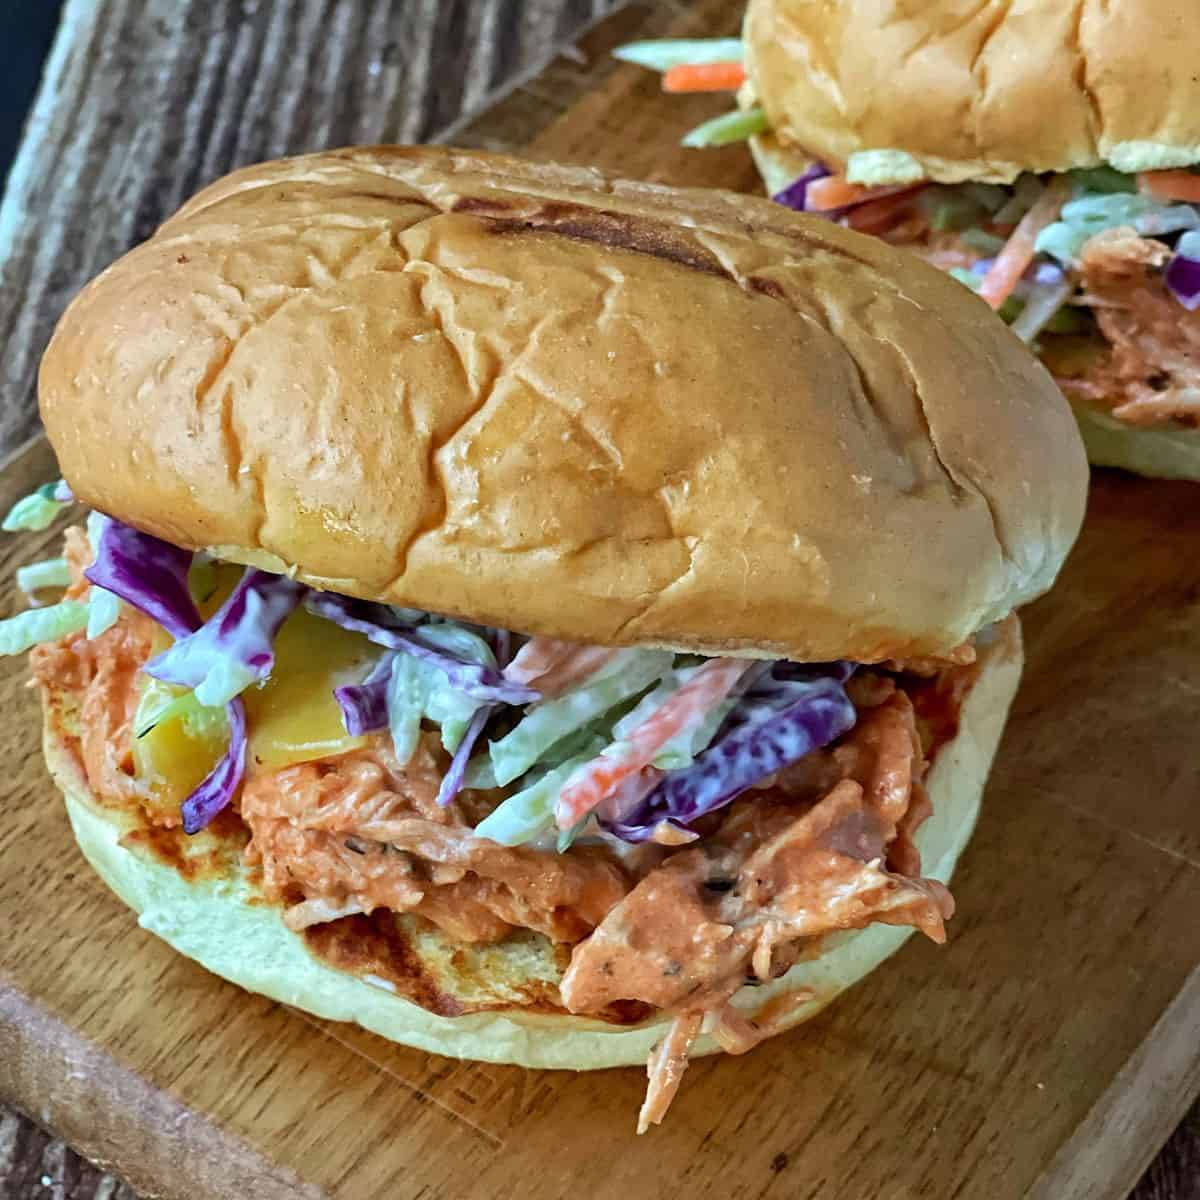 A close up of Slow Cooker Shredded Chicken in a burger bun.